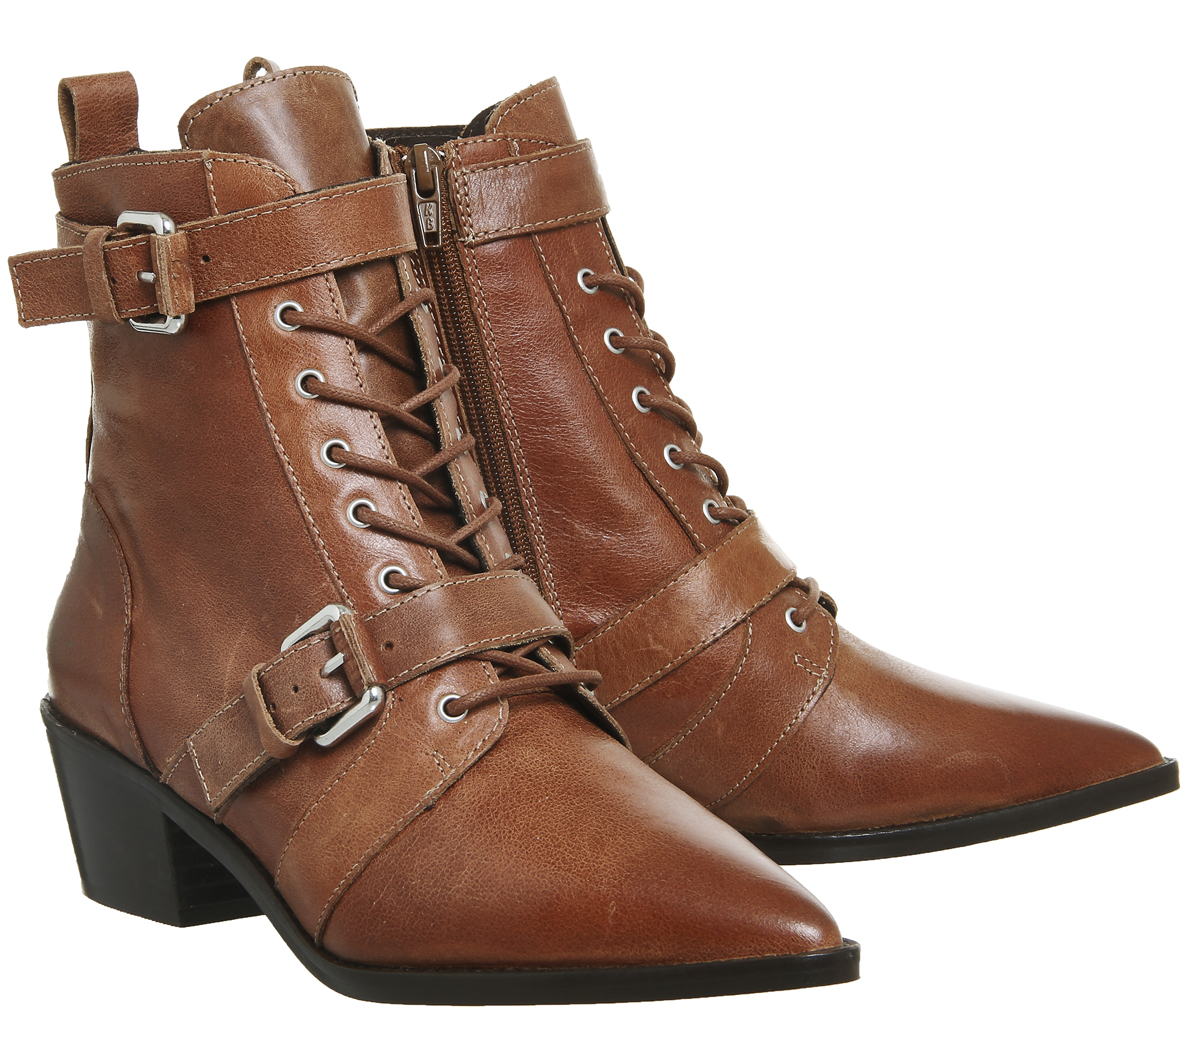 Damenschuhe Office Ambassador Lace Up Stiefel TAN TAN Stiefel LEATHER Stiefel 7c91e4